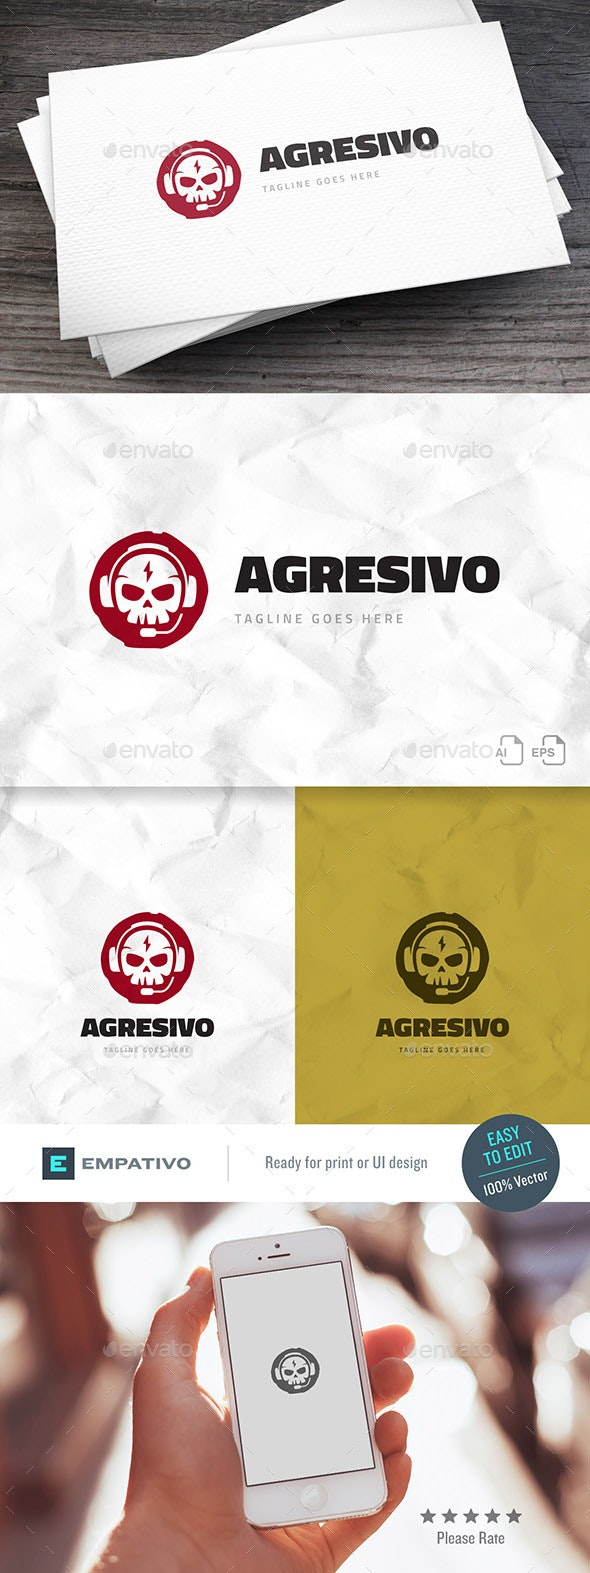 Agresivo Logo Template